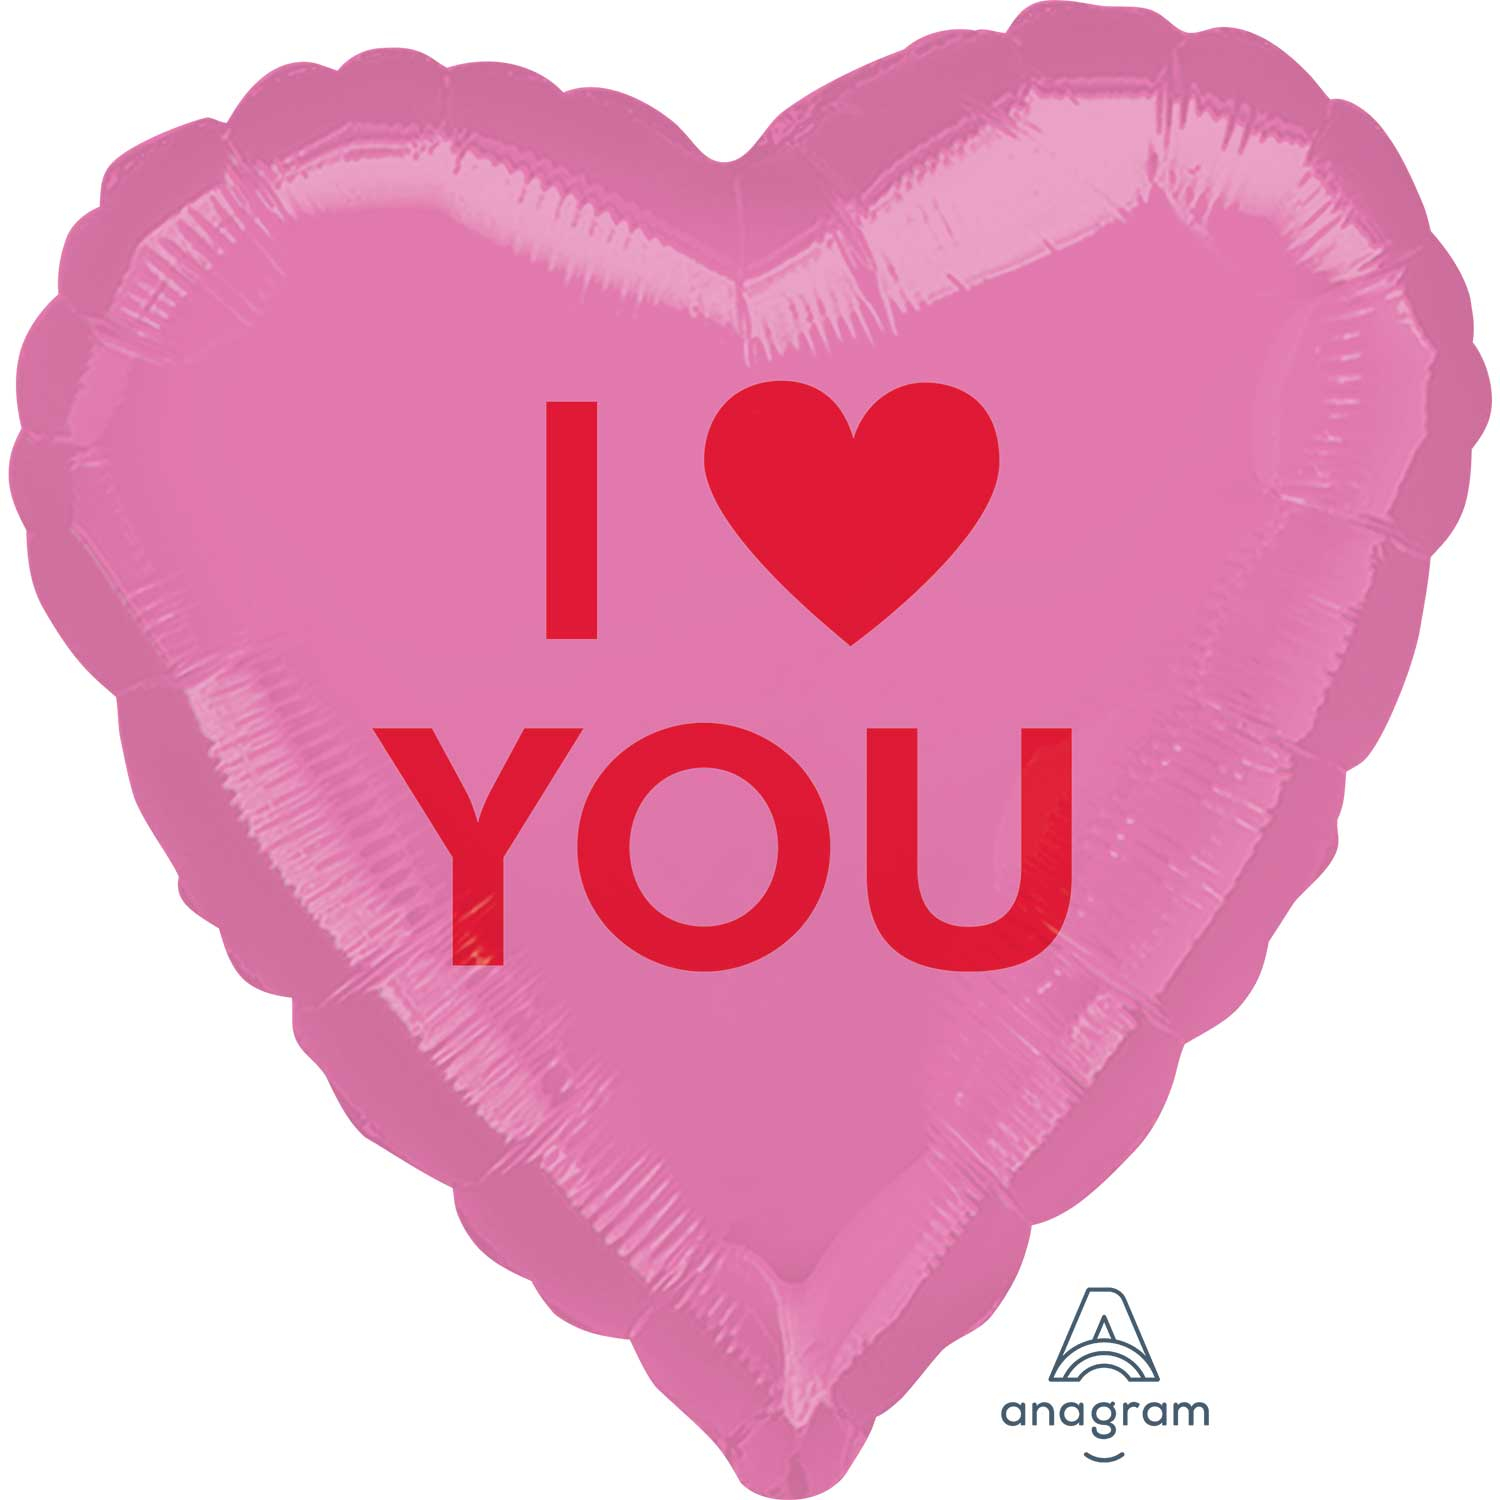 i love you heart candy standard hx foil balloons s40 - 5 pc : amscan